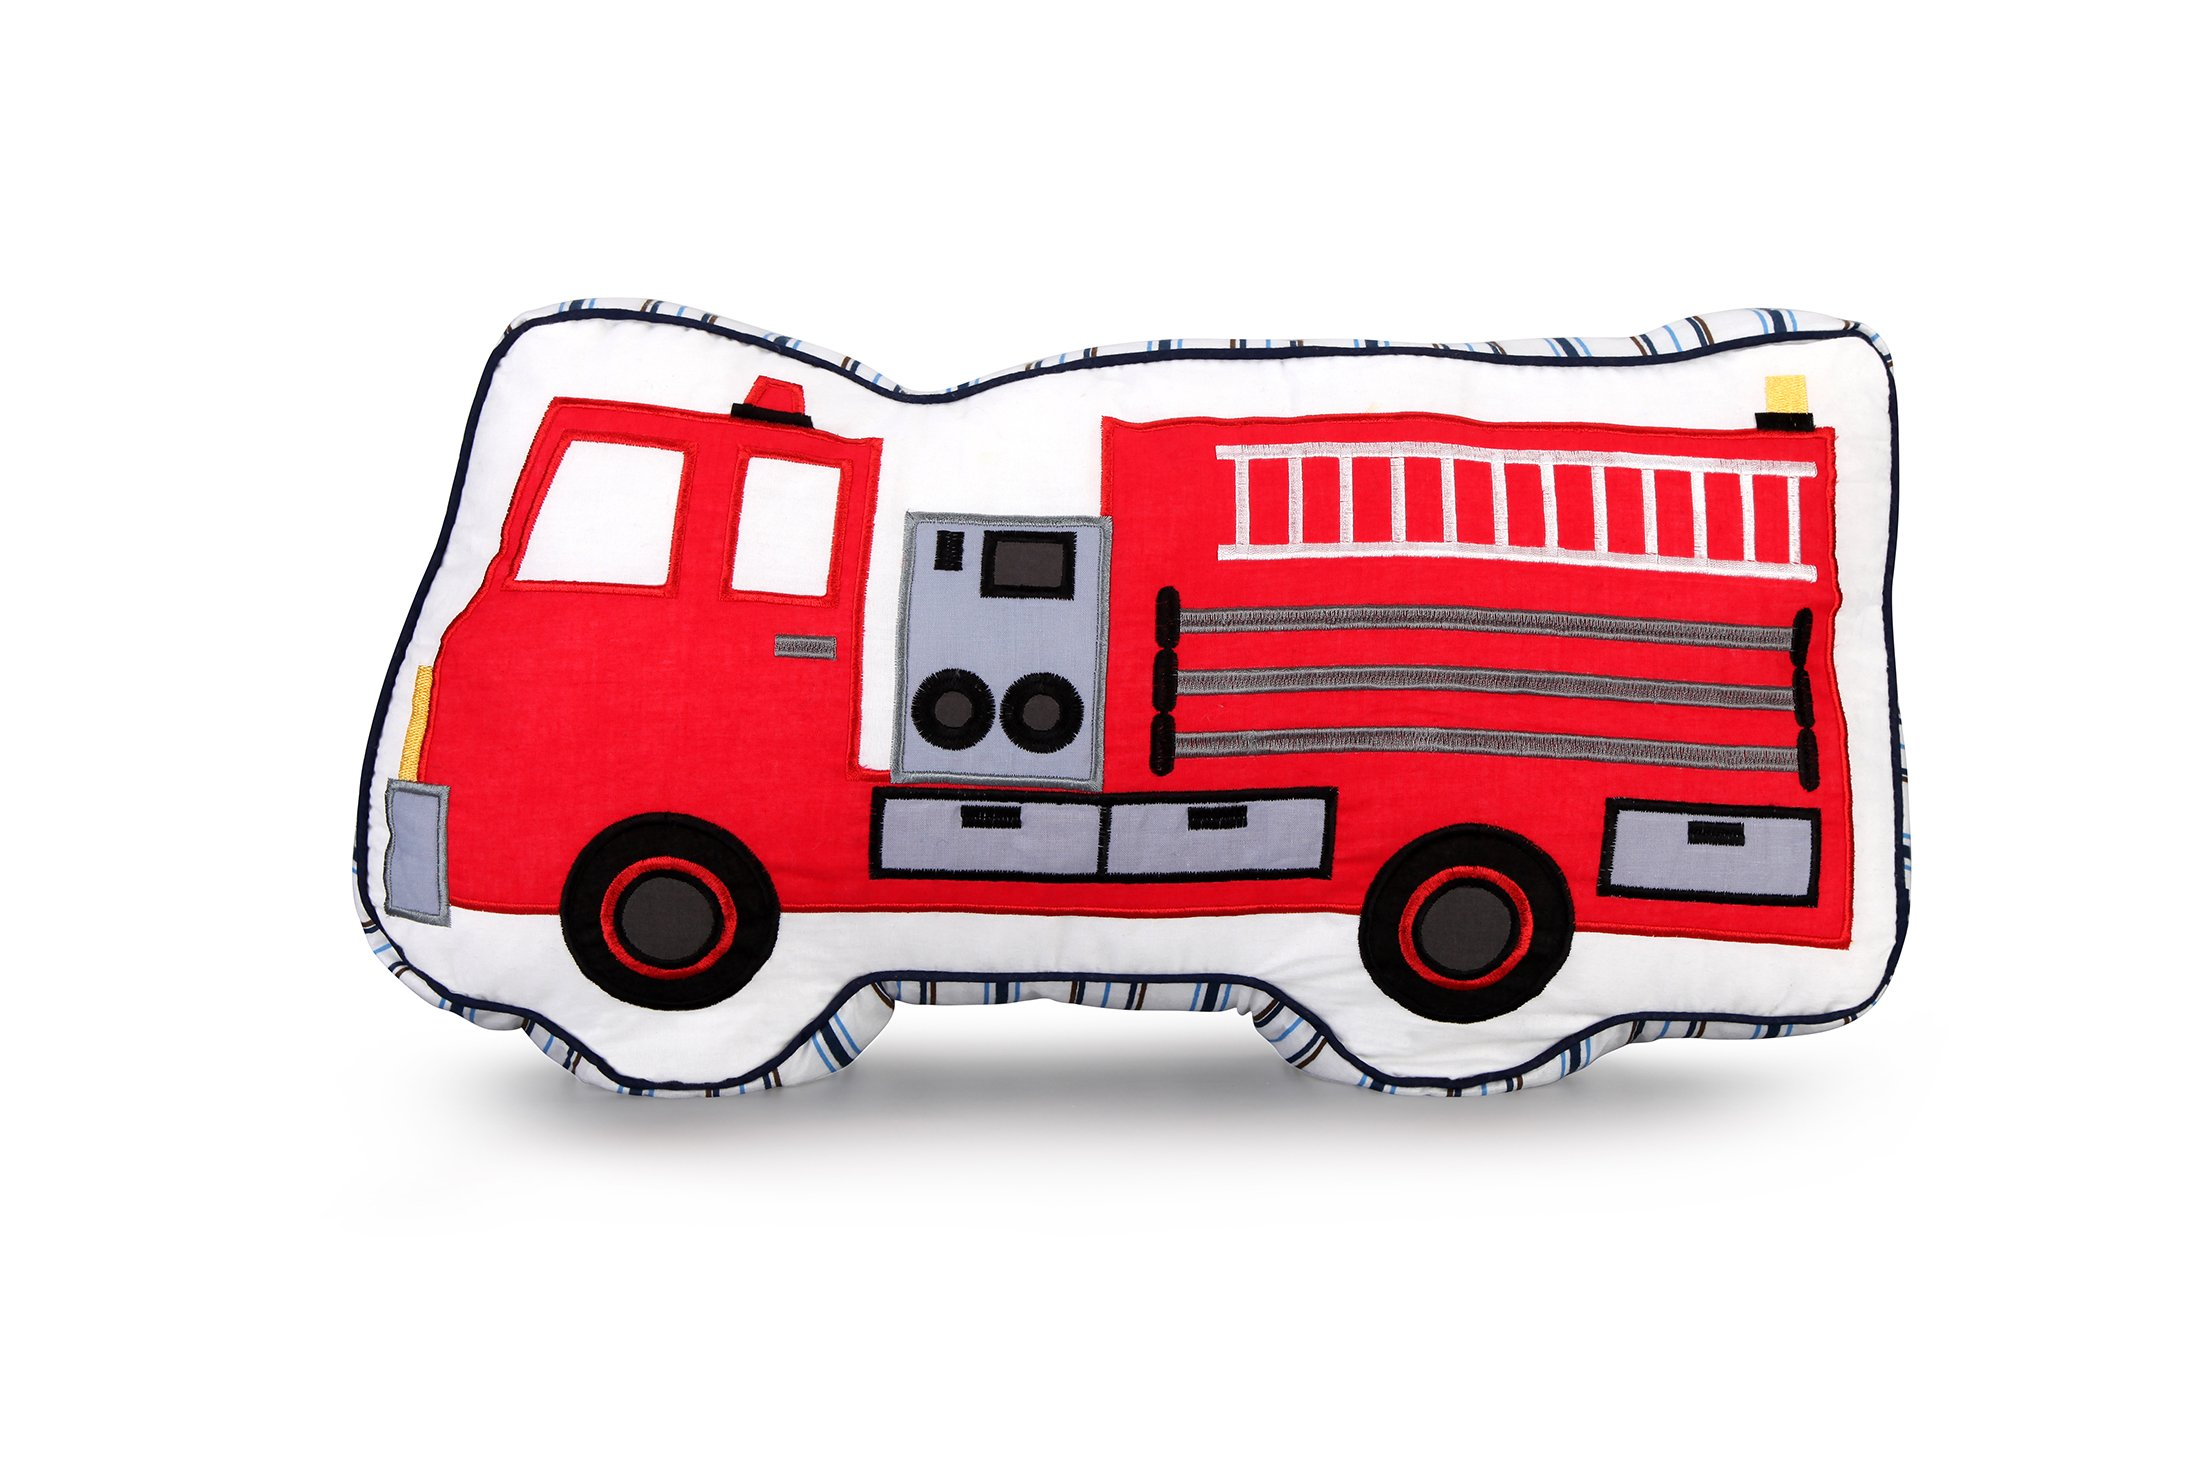 yiduyia Characteristic 100% Cotton Embroidery Fire Truck Pillows Kids Children Pillow, Ornaments for Children's Rooms and Car Cushions,Children's Toy Throw by yiduyia